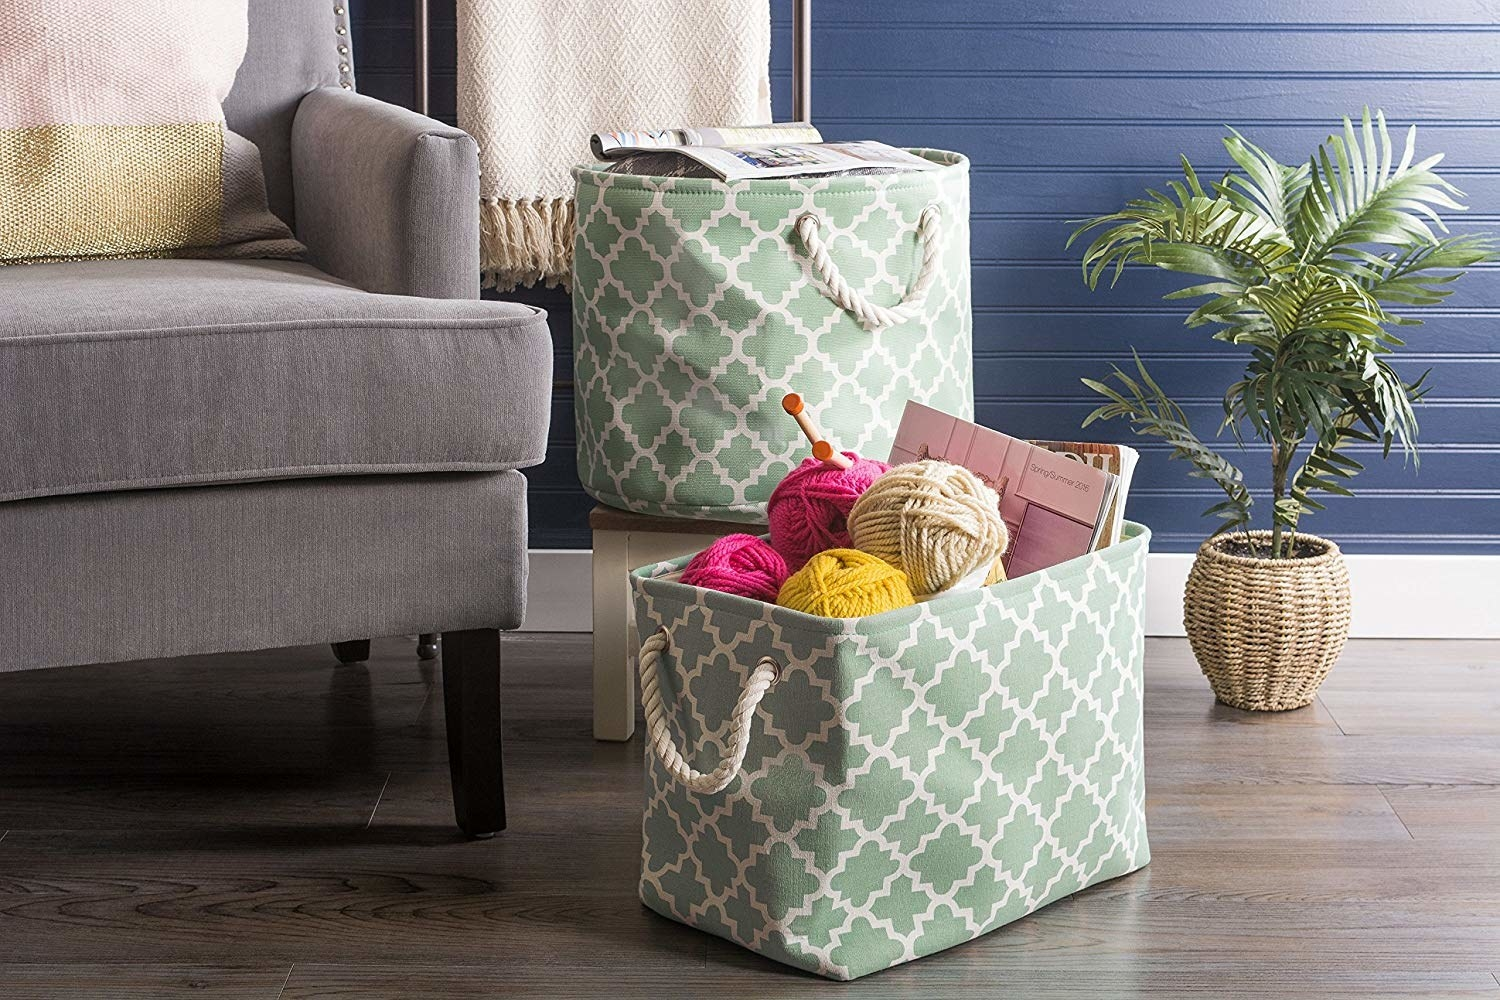 two bins in green and white lattice print, filled respectively with magazines and knitting